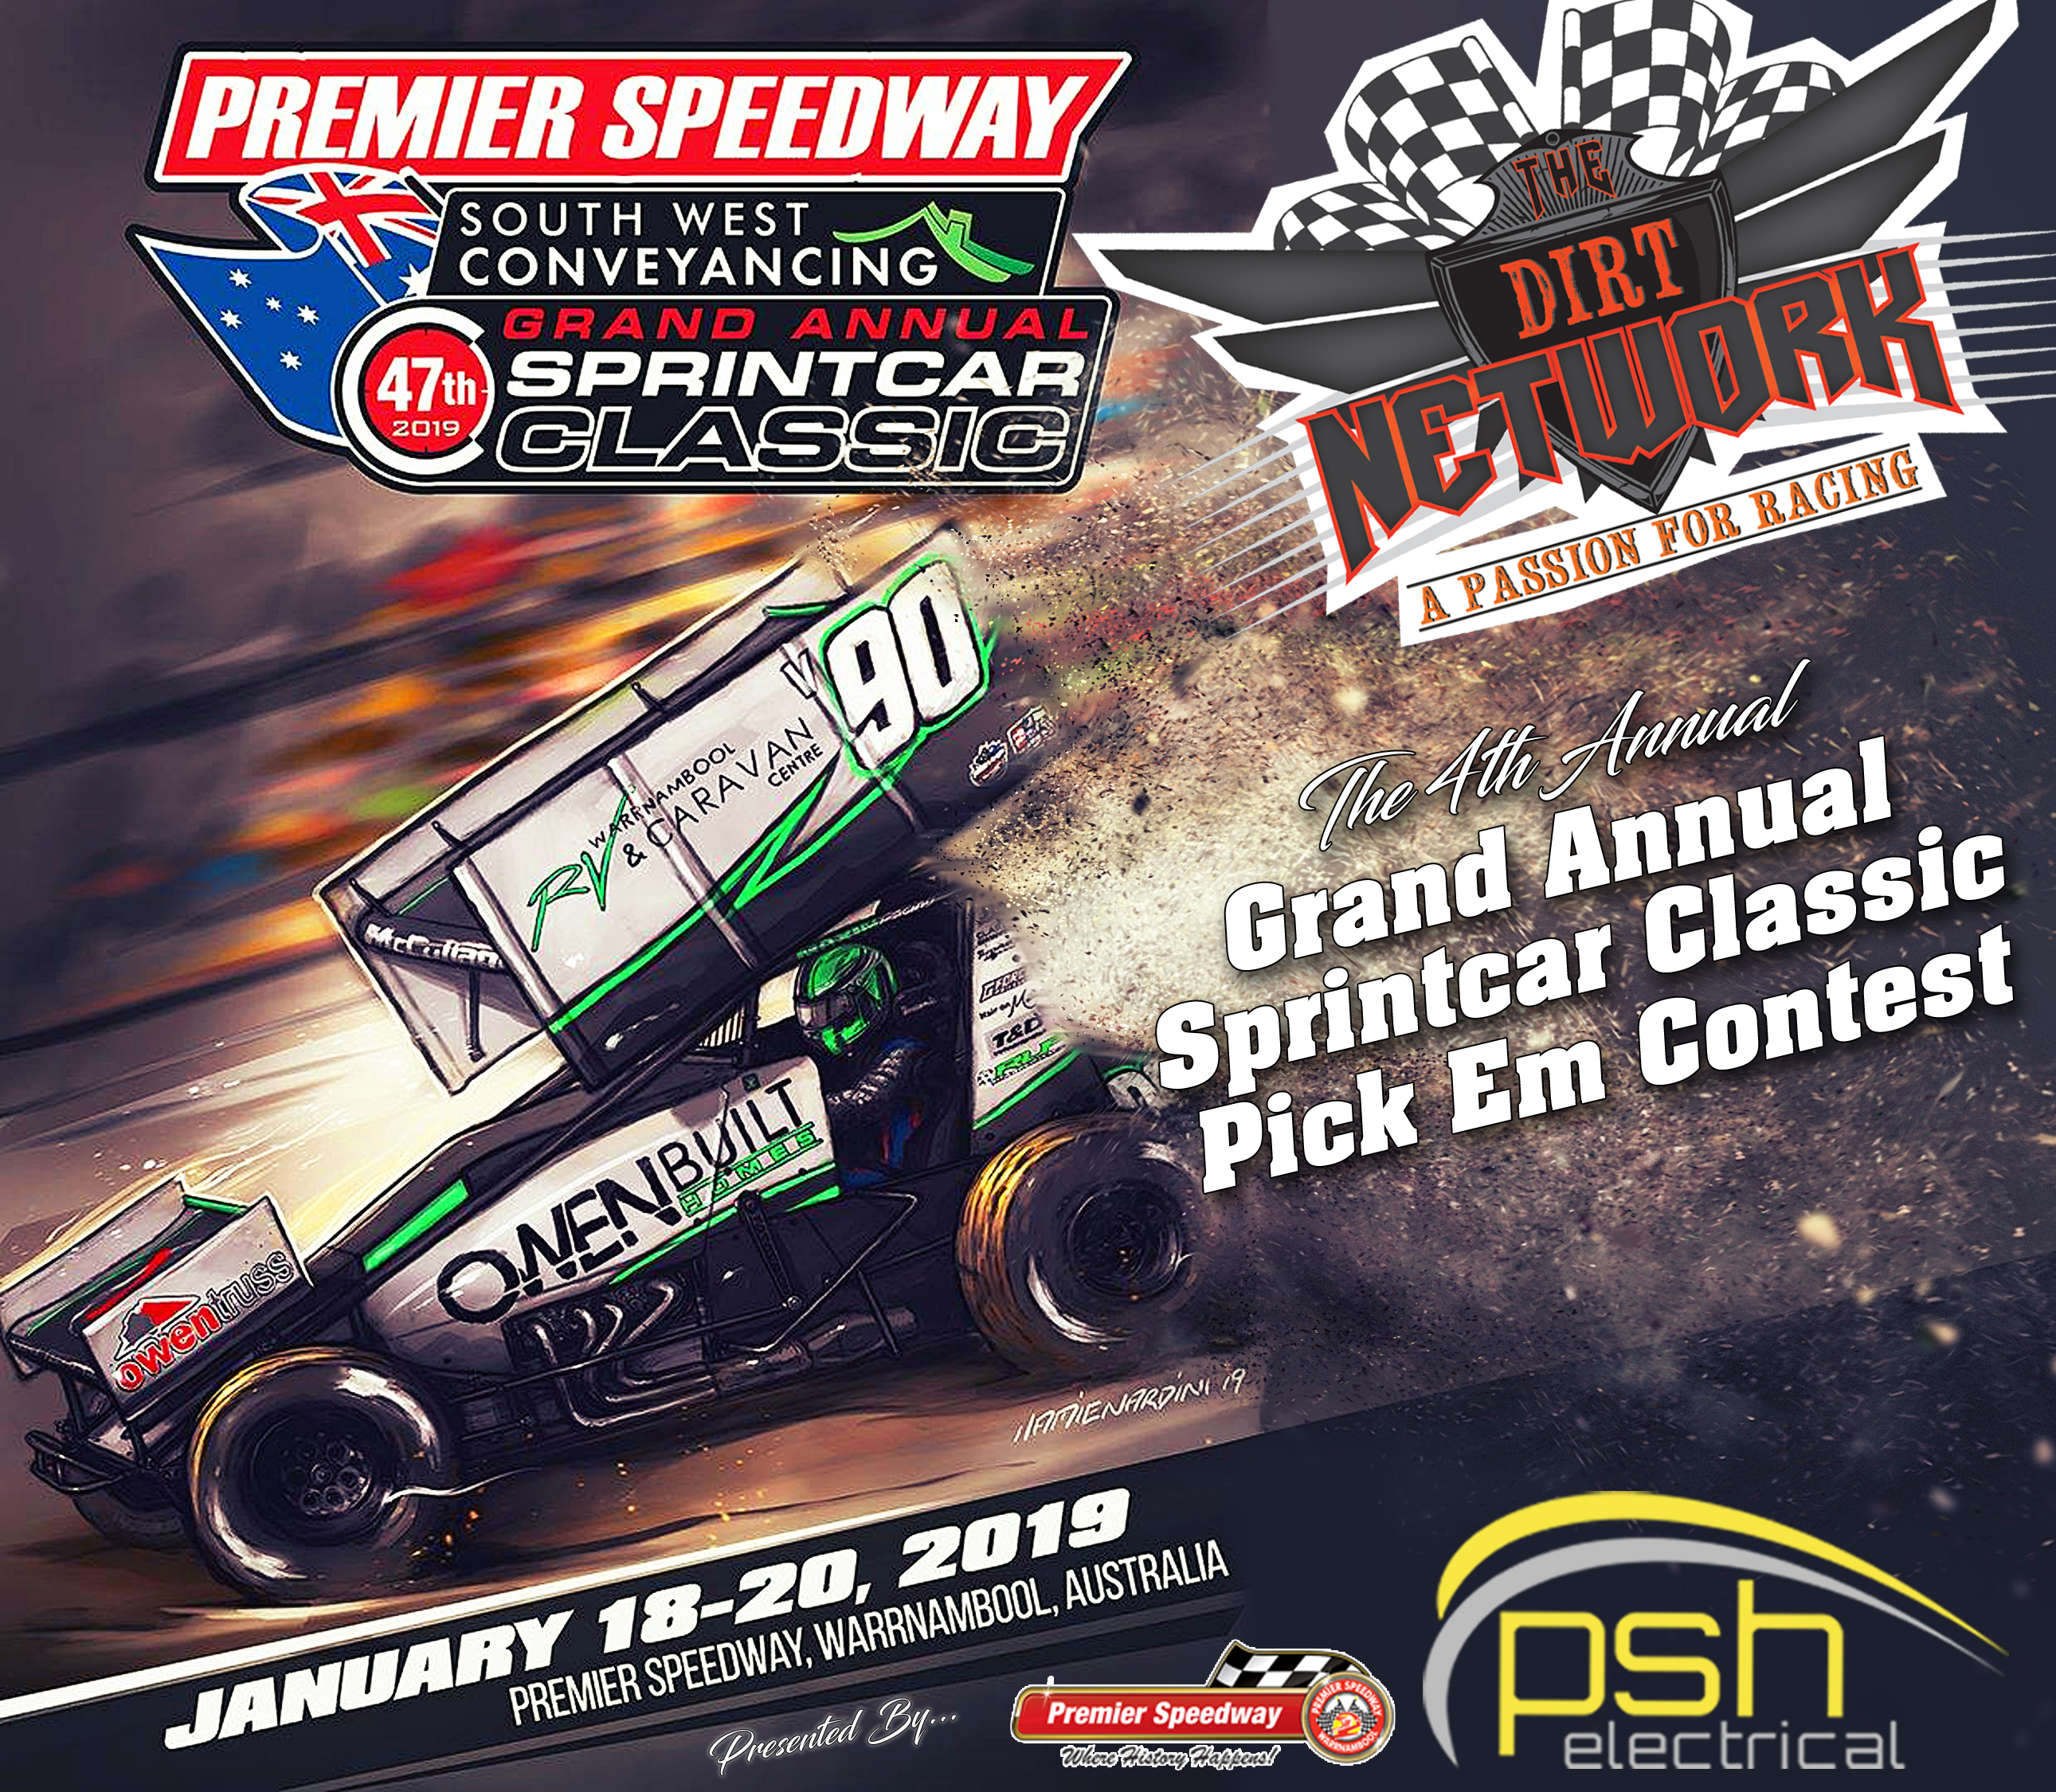 Grand annual sprintcar classic betting binary options australia regulated waste